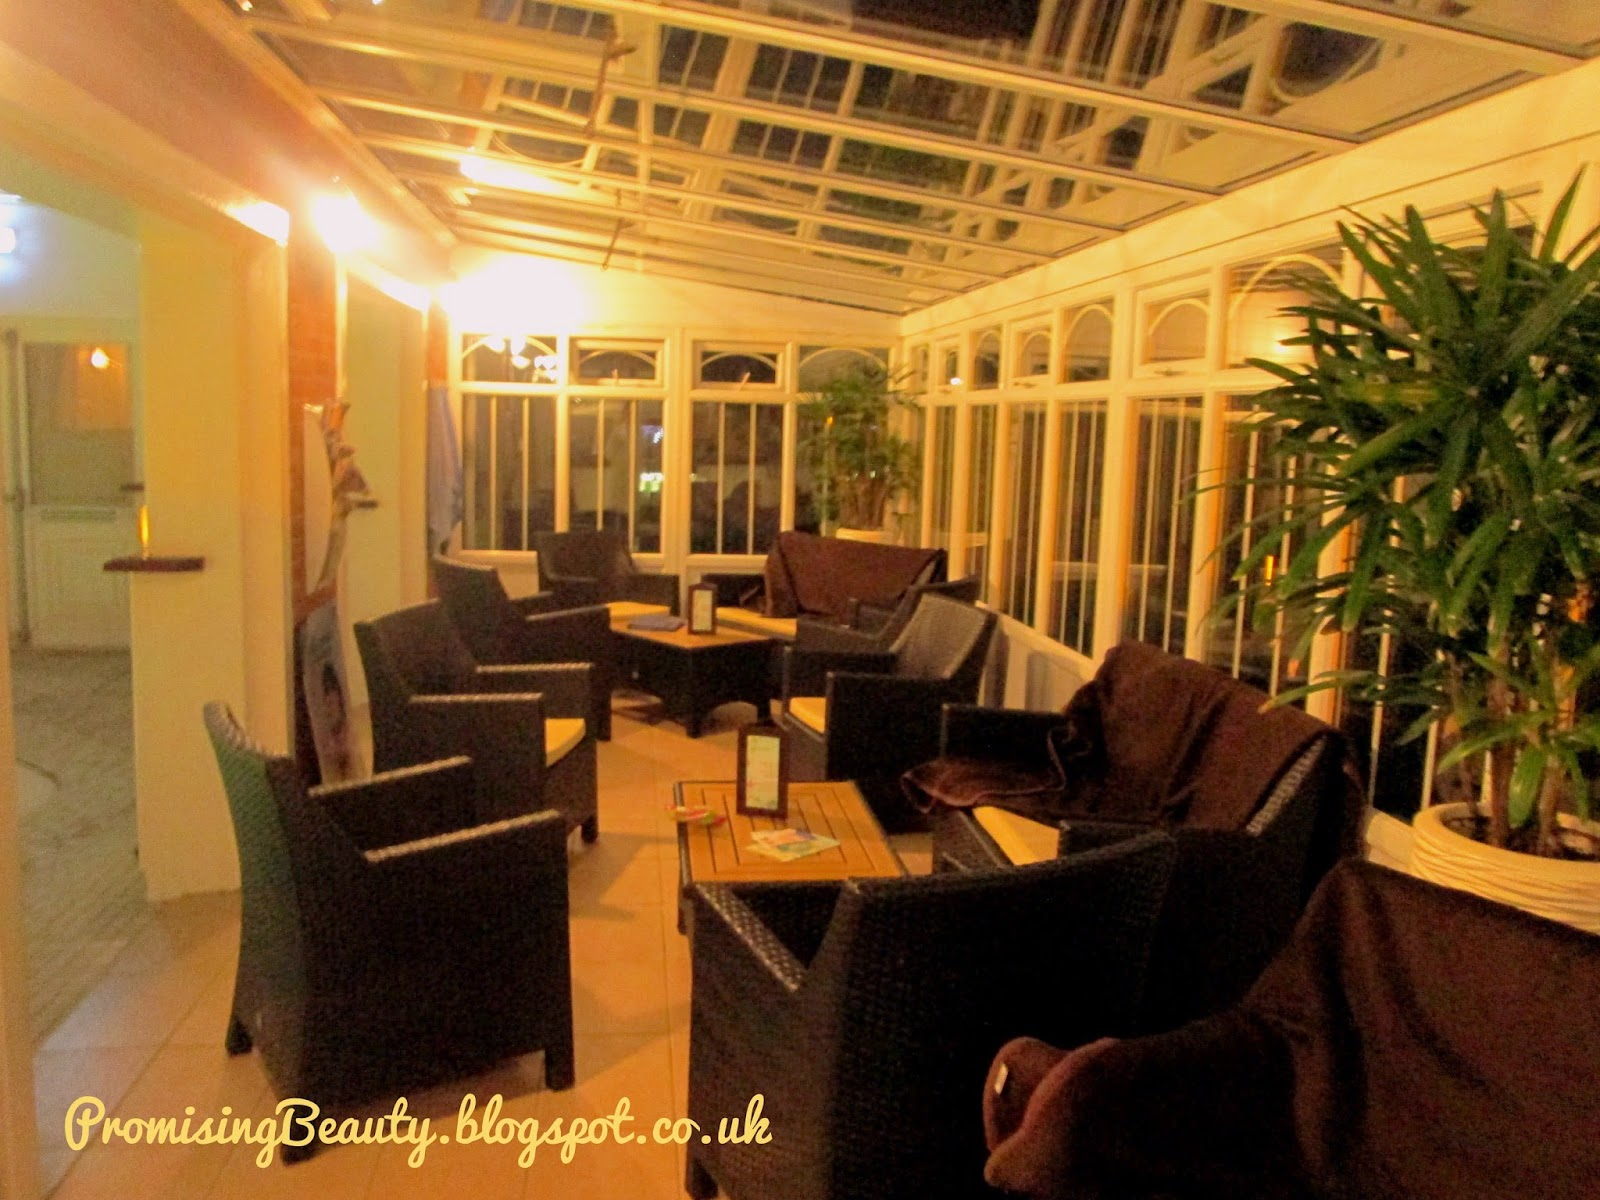 Alton Towers Spa, conservatory by night